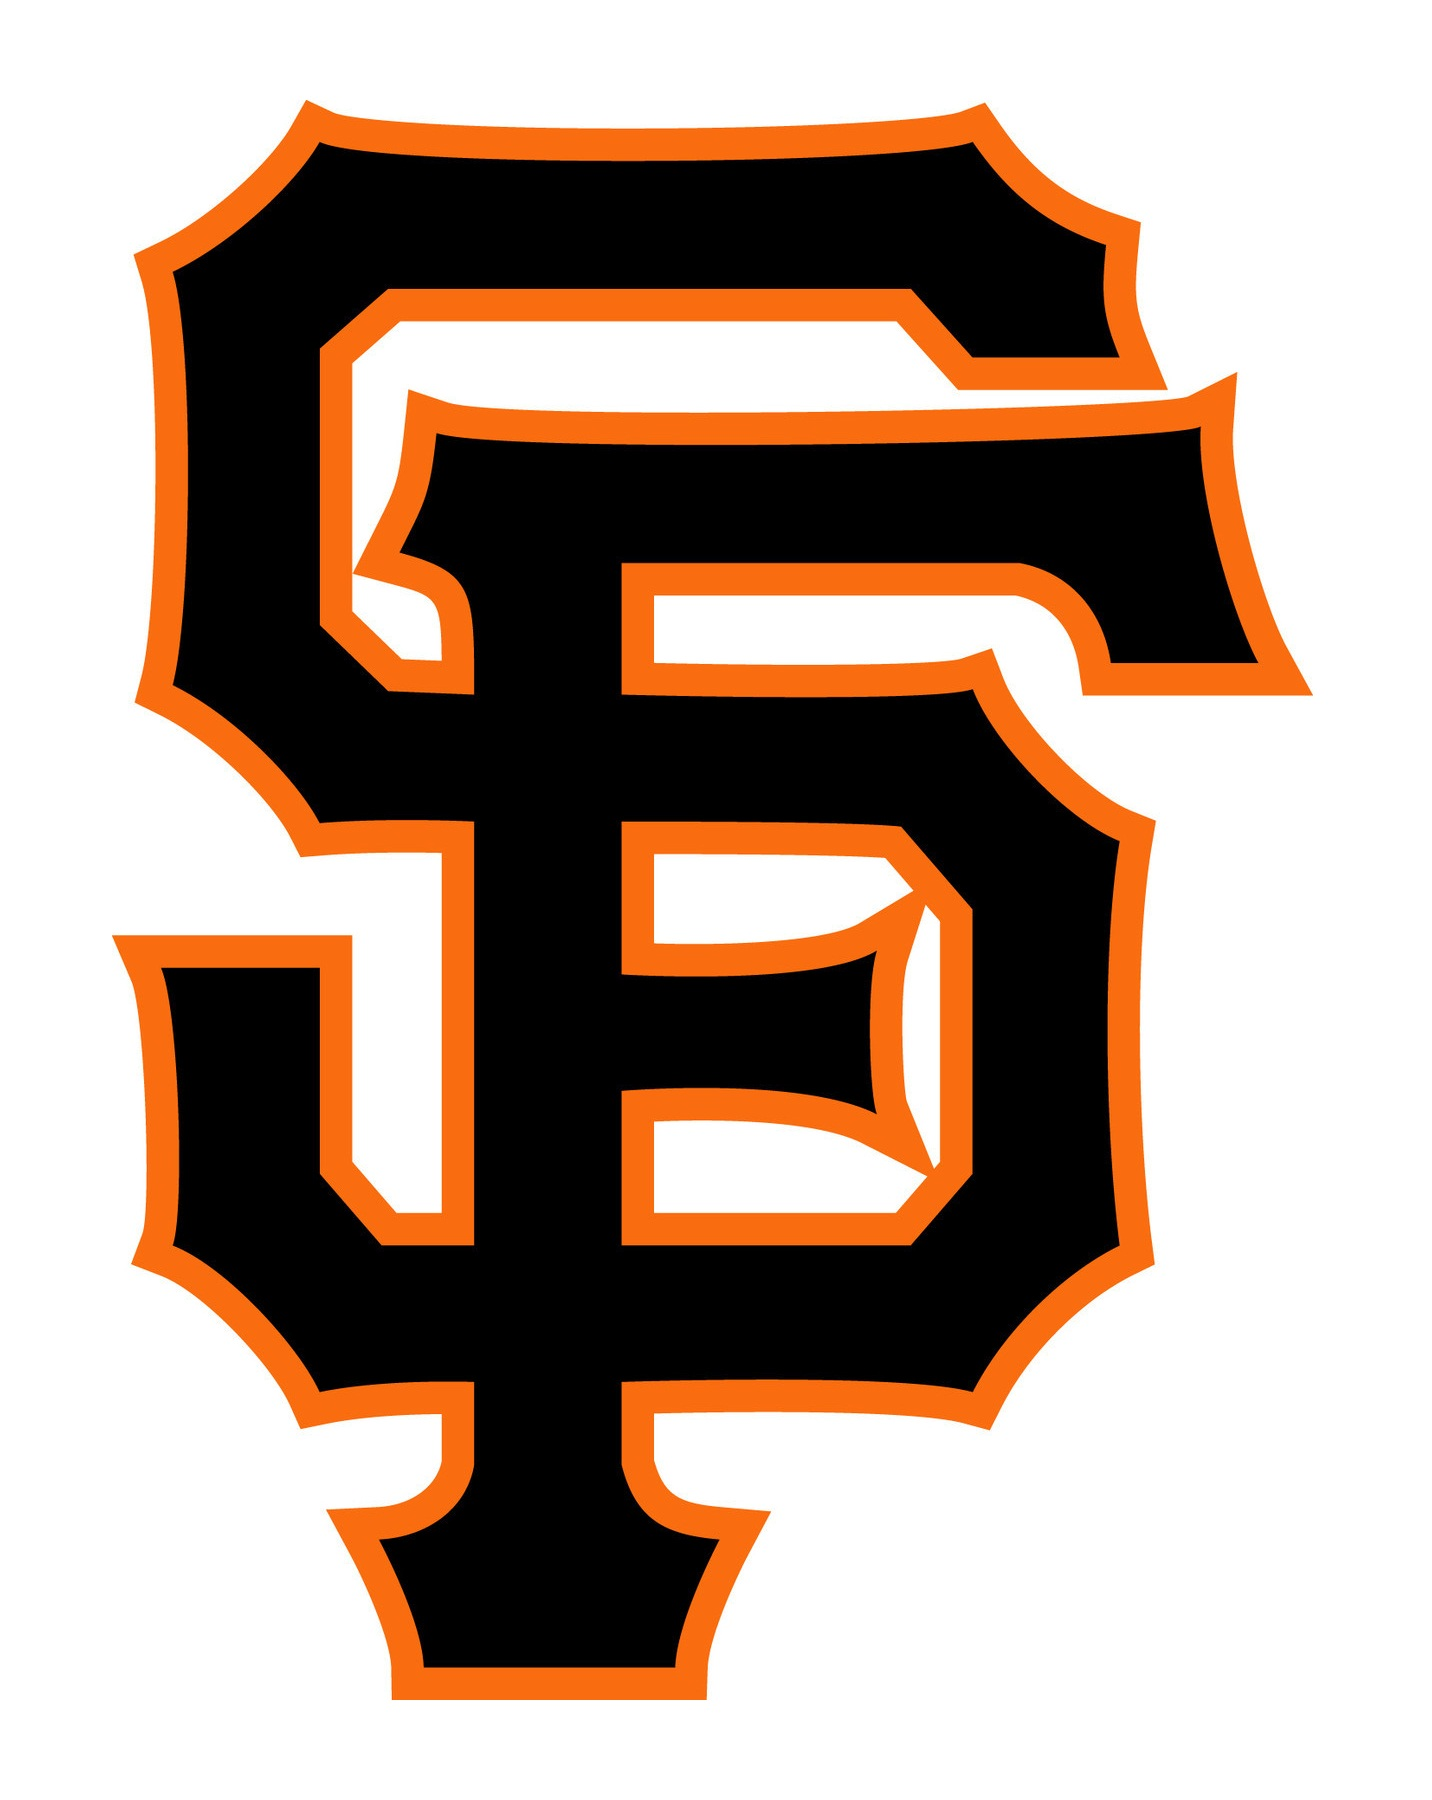 san francisco giants rh hmgstrategy com San Francisco Giants Lettering Font san francisco giants logo font